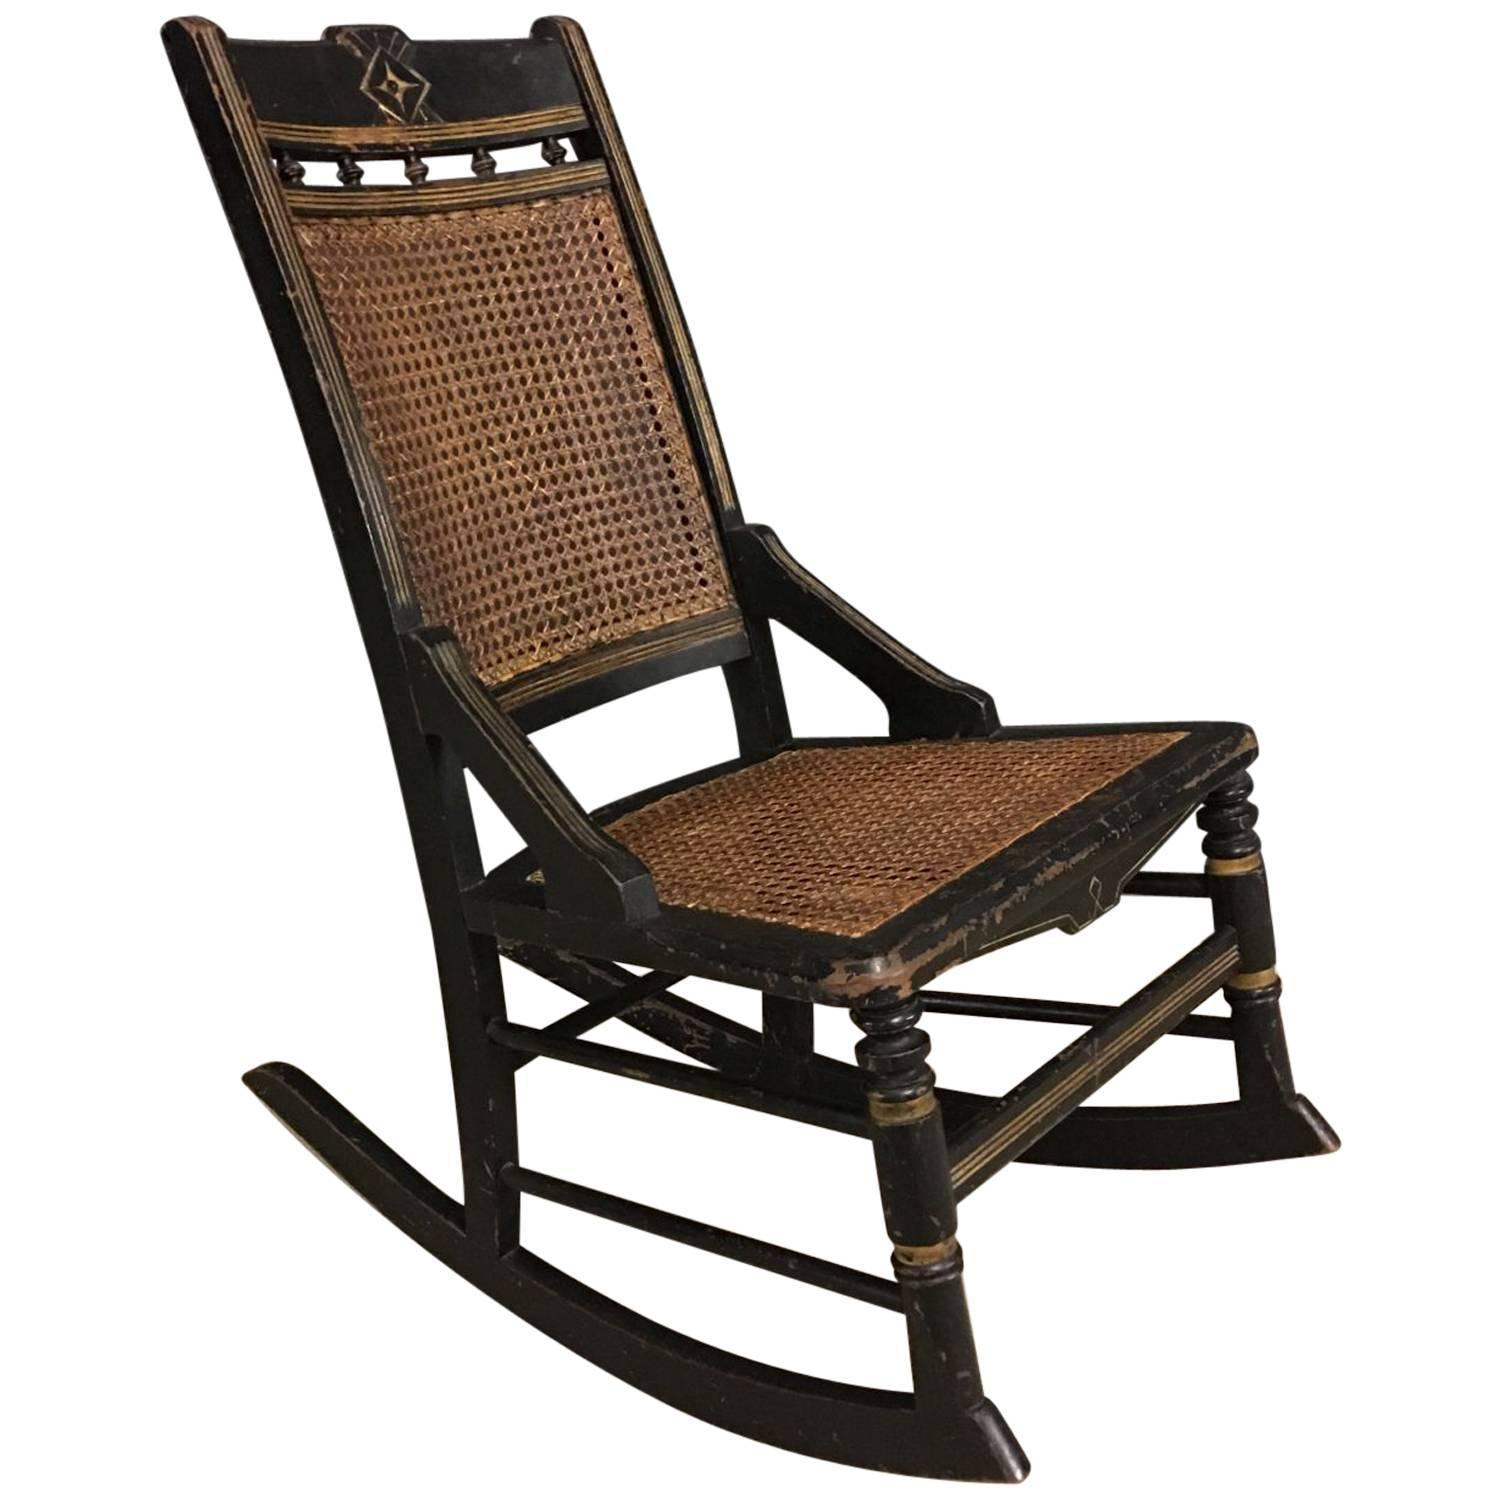 Lovely Antique French Napoleon III Rocking Chair, Circa 1850s For Sale At 1stdibs